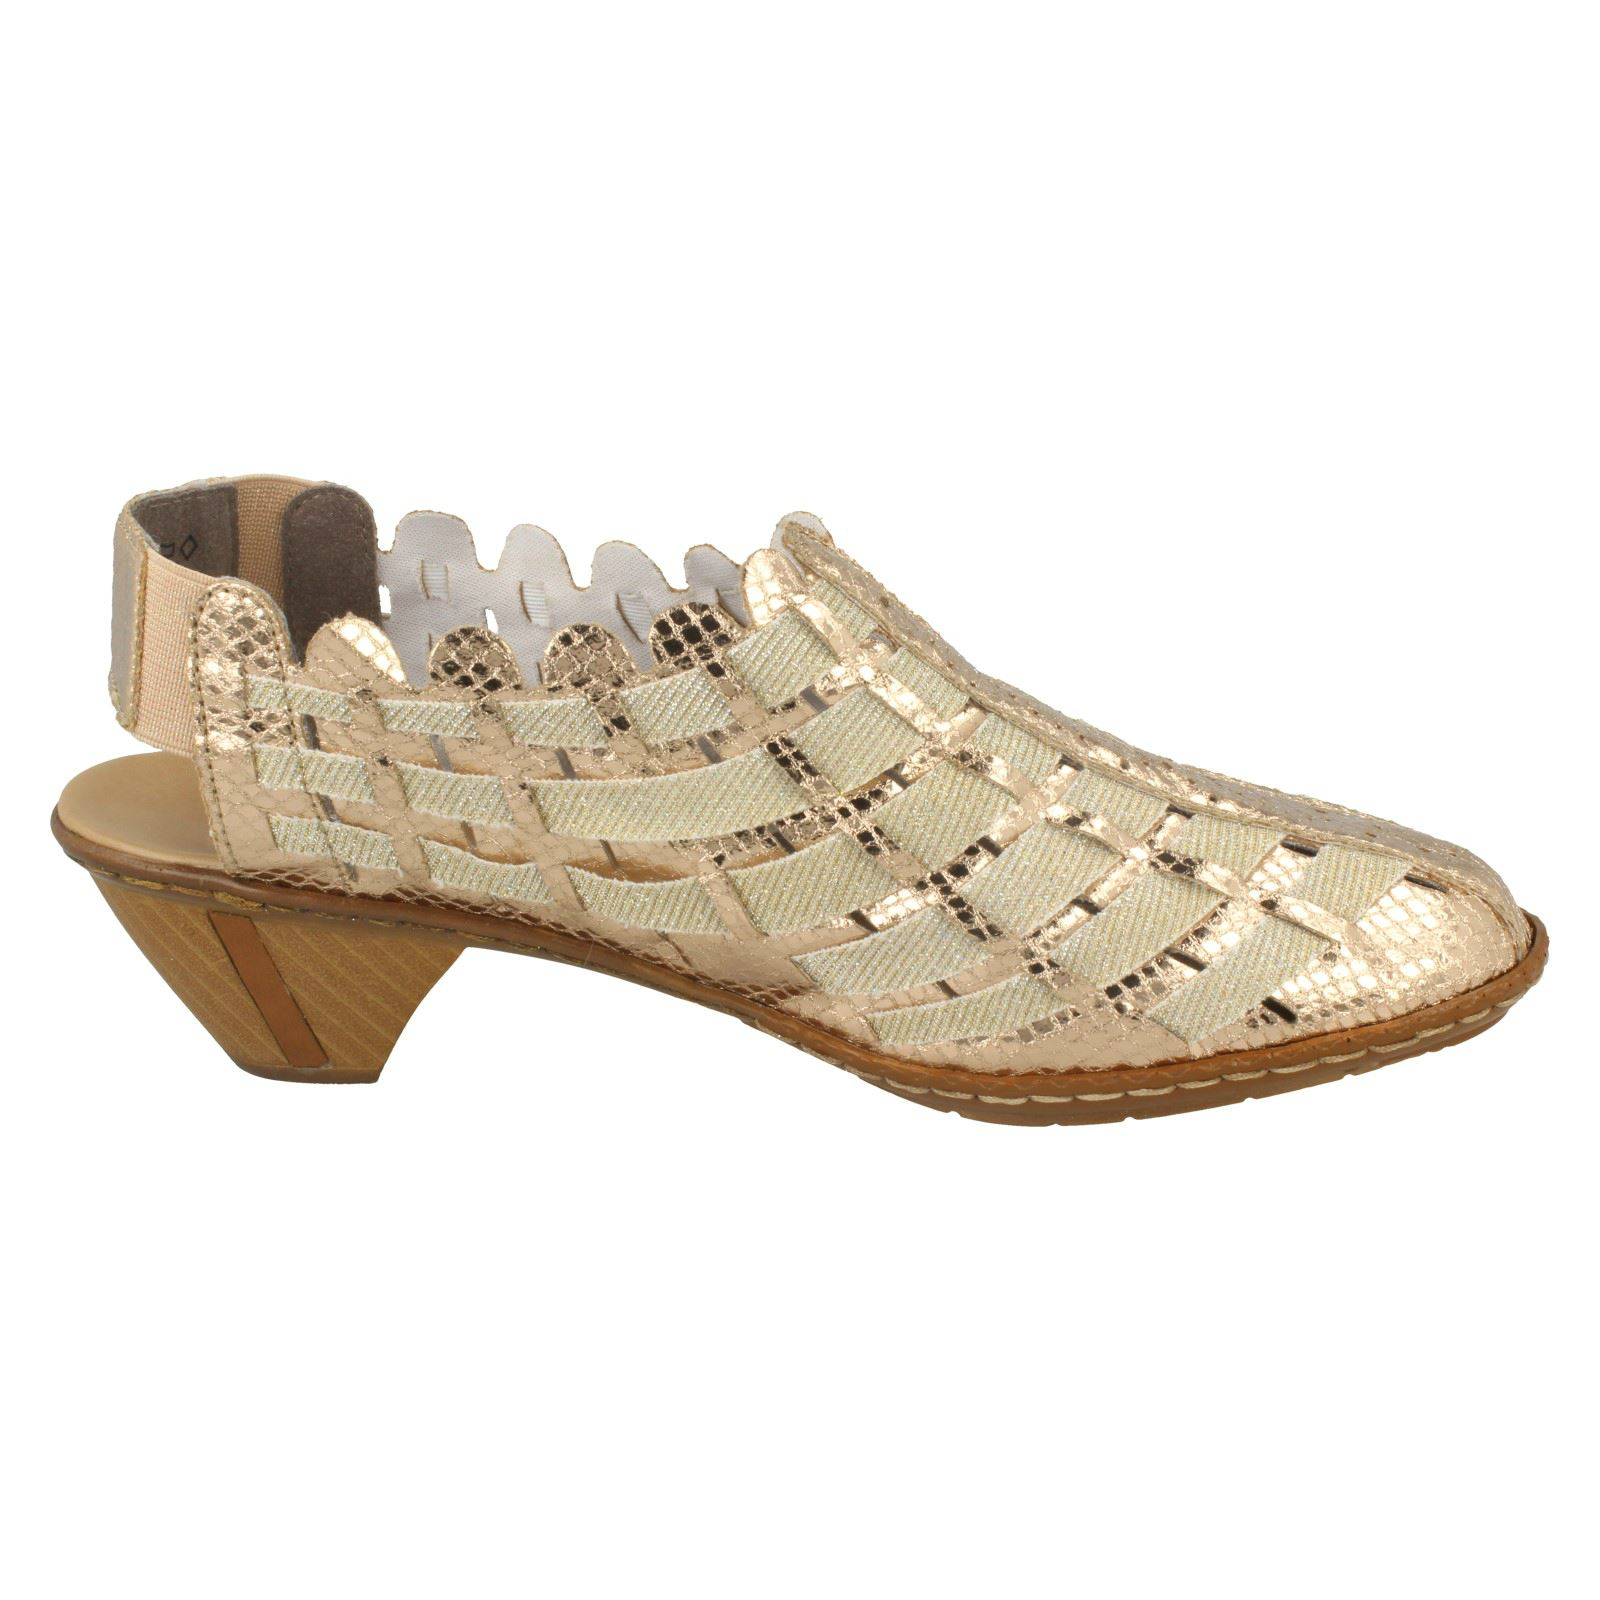 Damenschuhe With Rieker Sling Back Schuhes With Damenschuhe Woven Detail 46778 b901bc